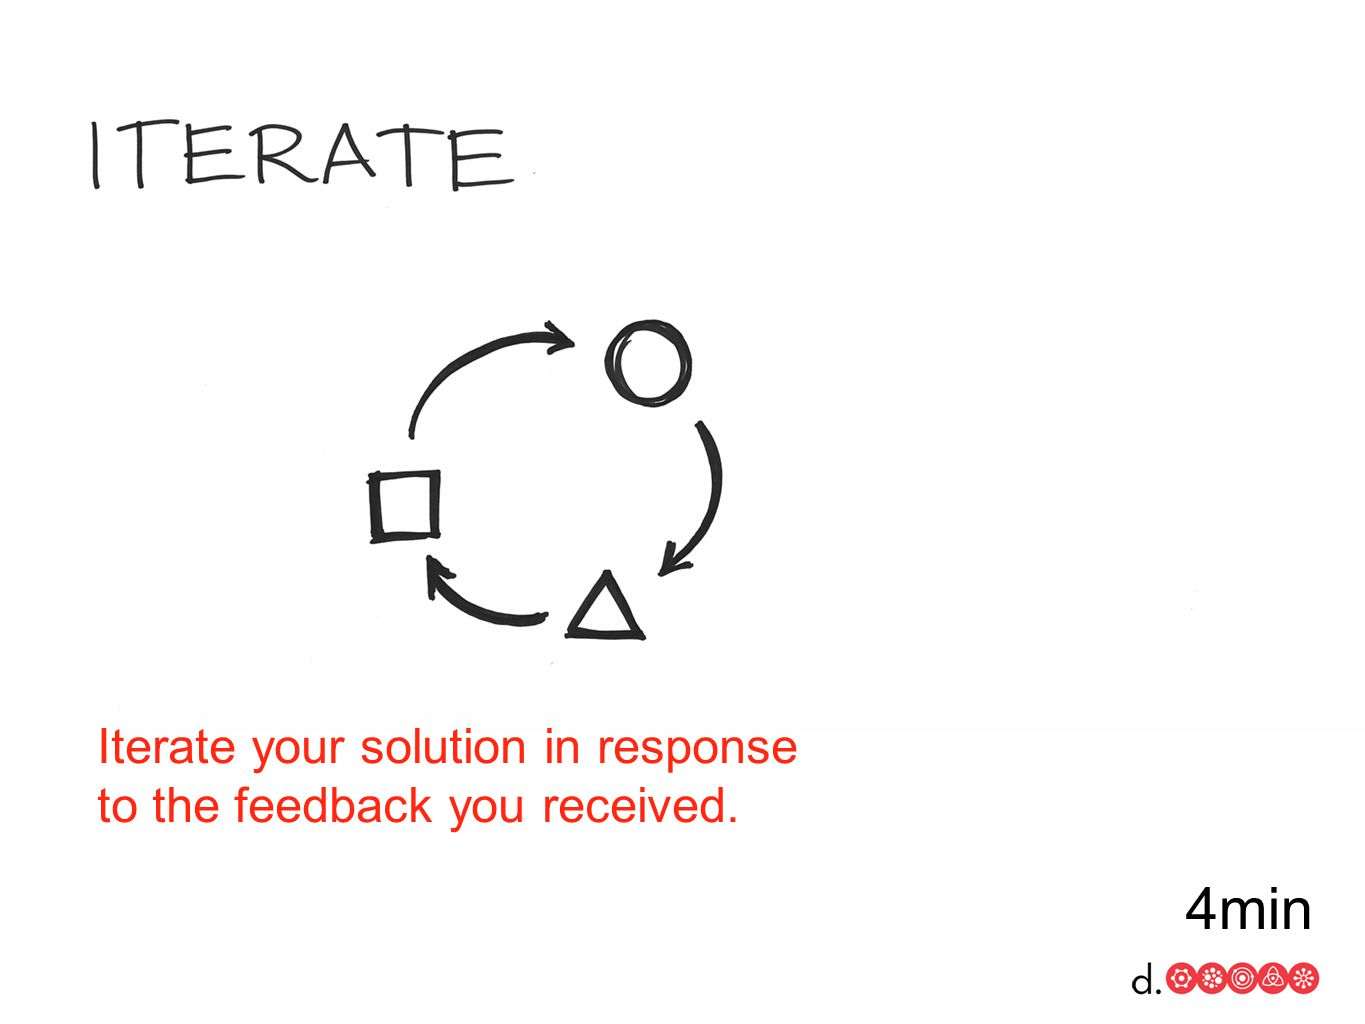 Iterate your solution in response to the feedback you received. 4min